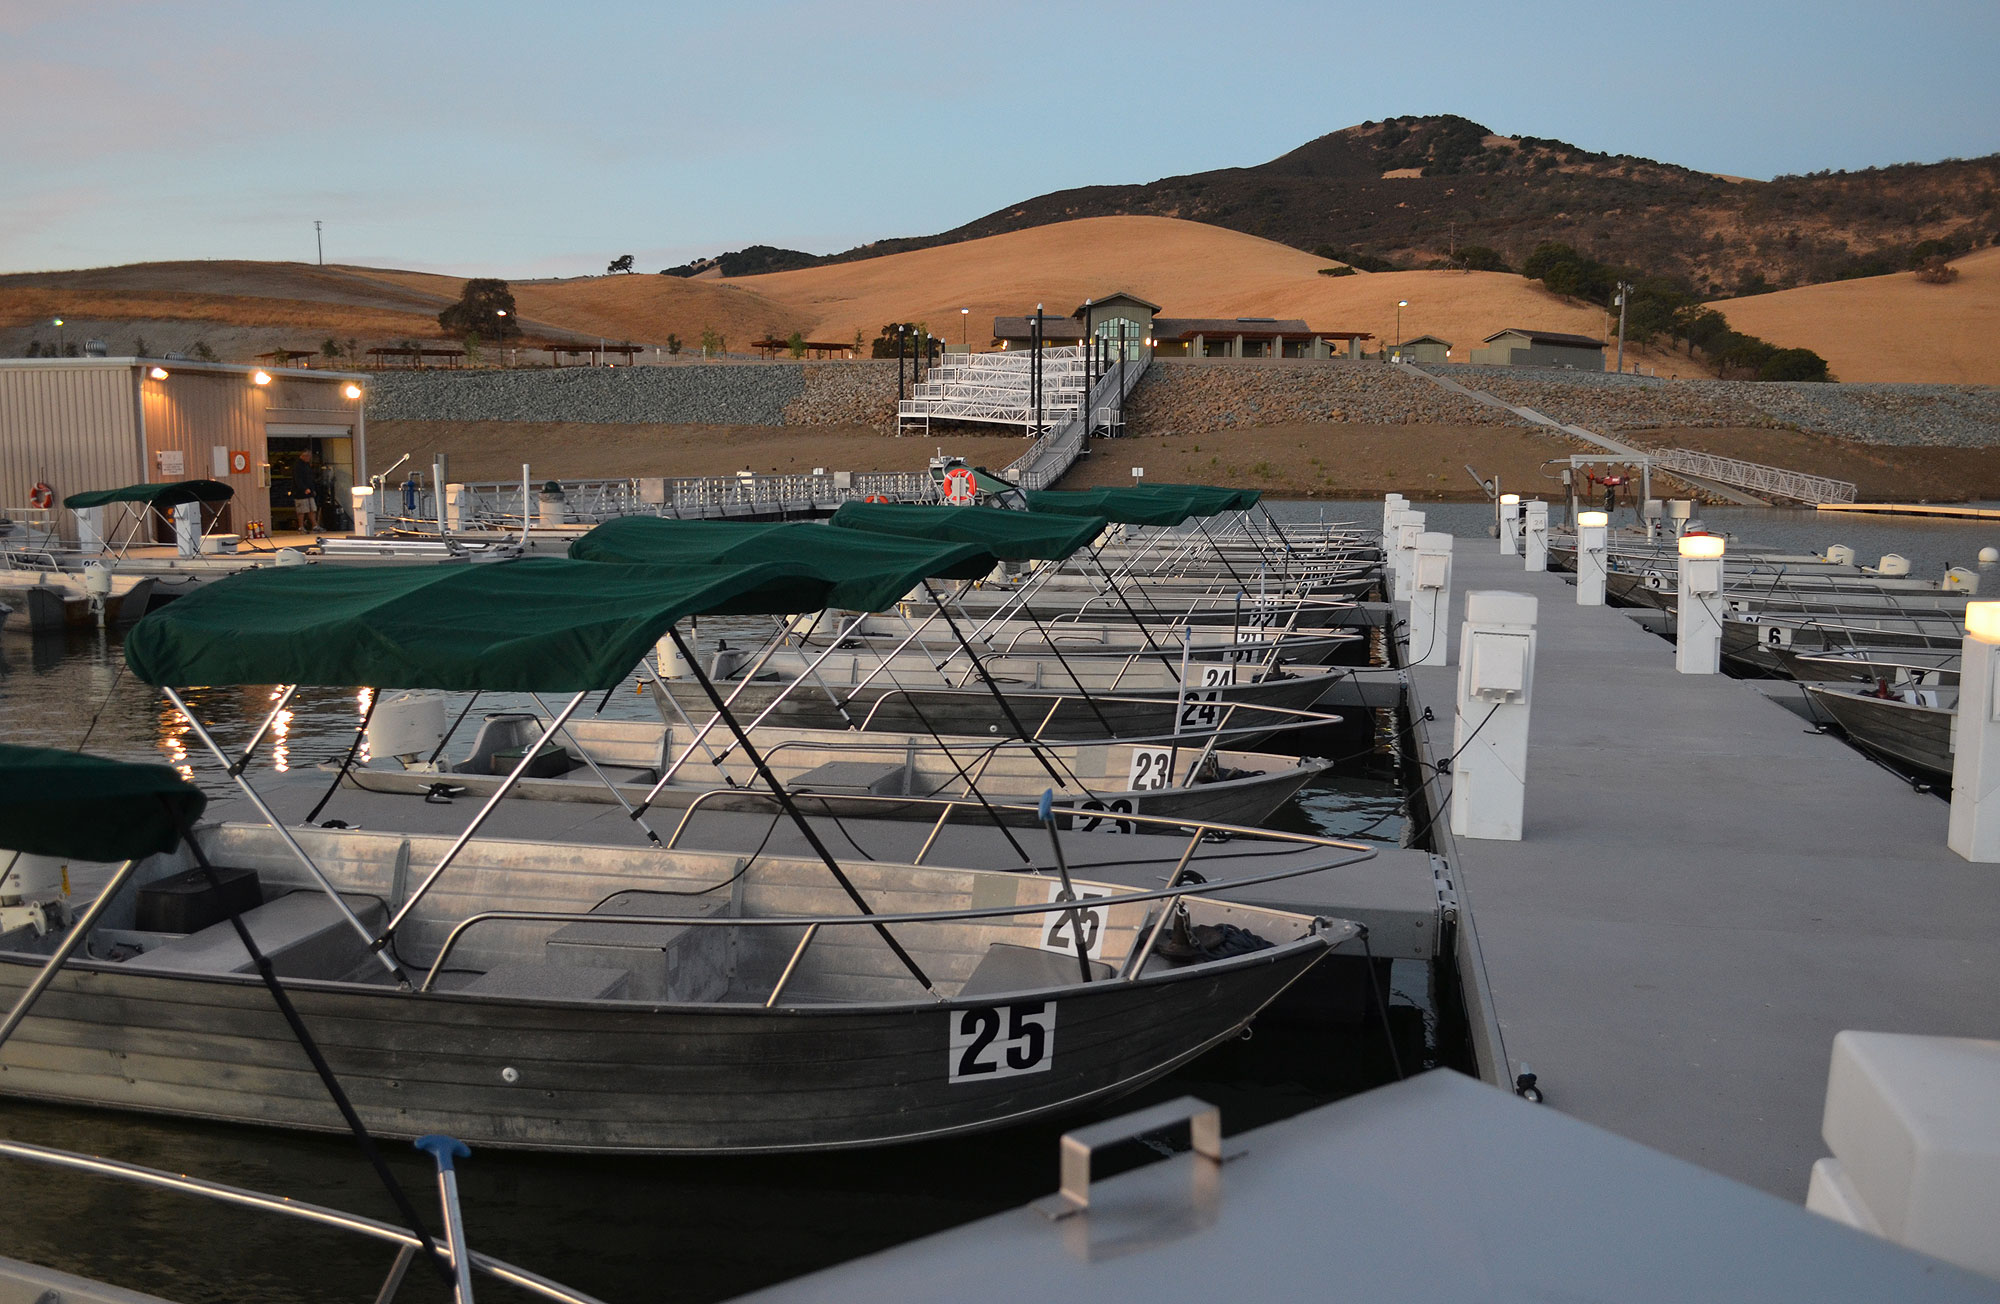 The Marina was ready for its reopening